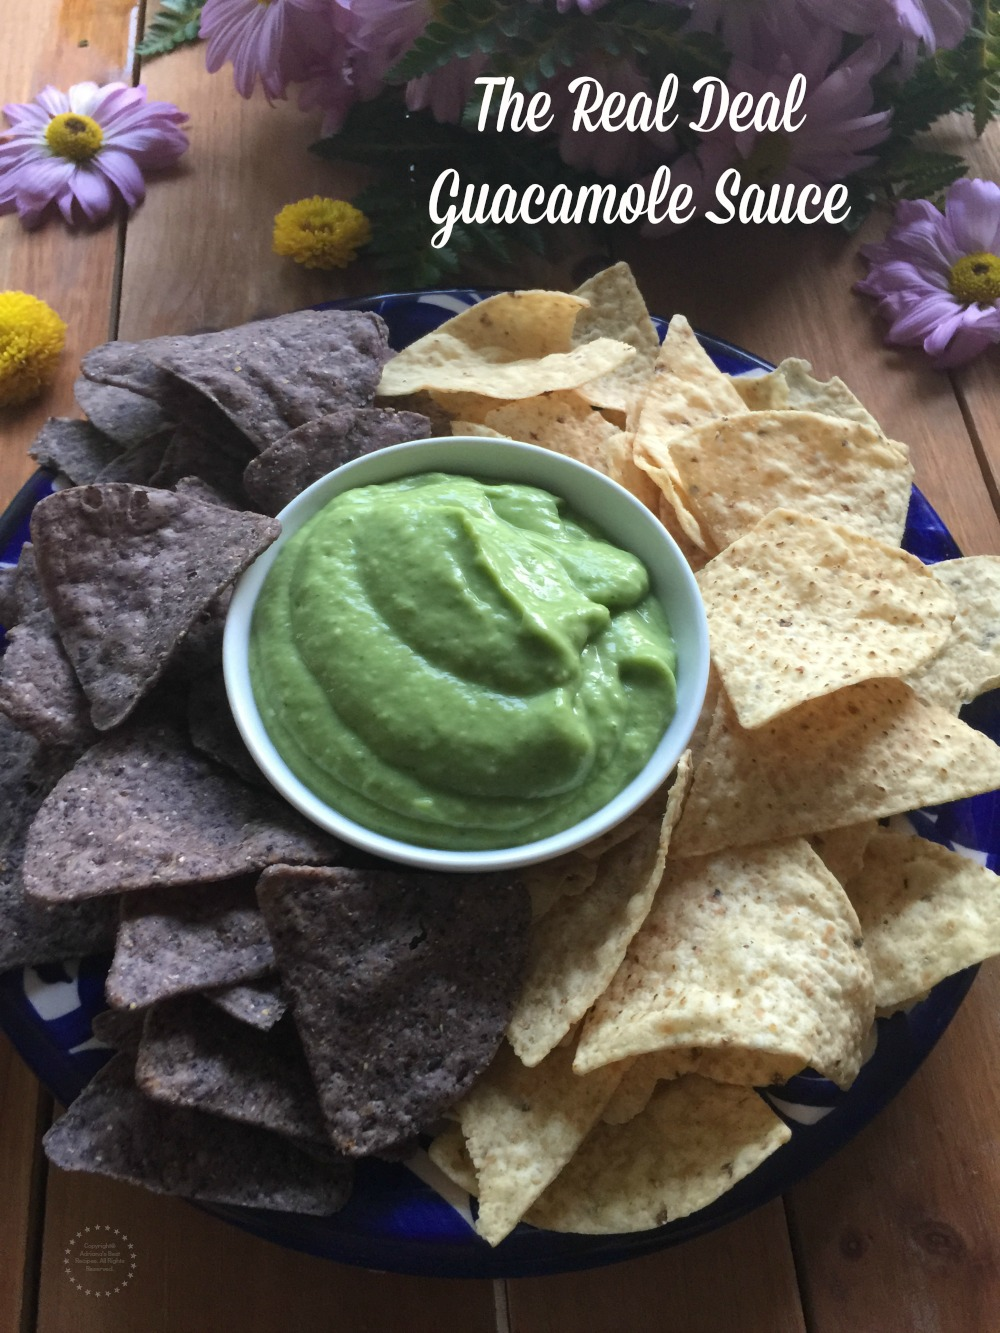 This is the real deal guacamole sauce. Made with Mexican hass avocados, tomatillos, serrano chiles, cilantro and garlic